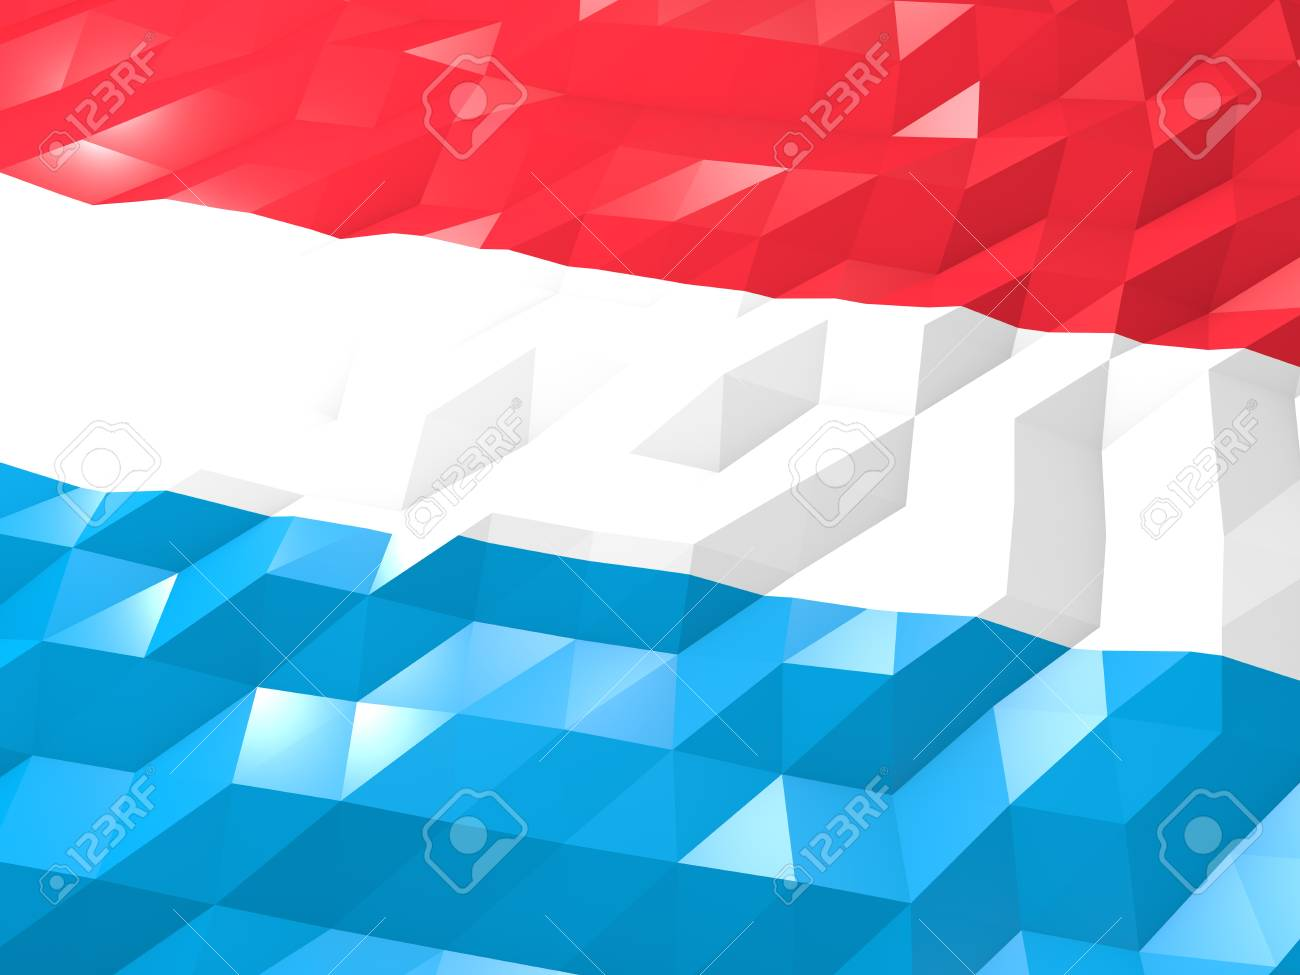 Flag Of Luxembourg 3D Wallpaper Illustration National Symbol 1300x975